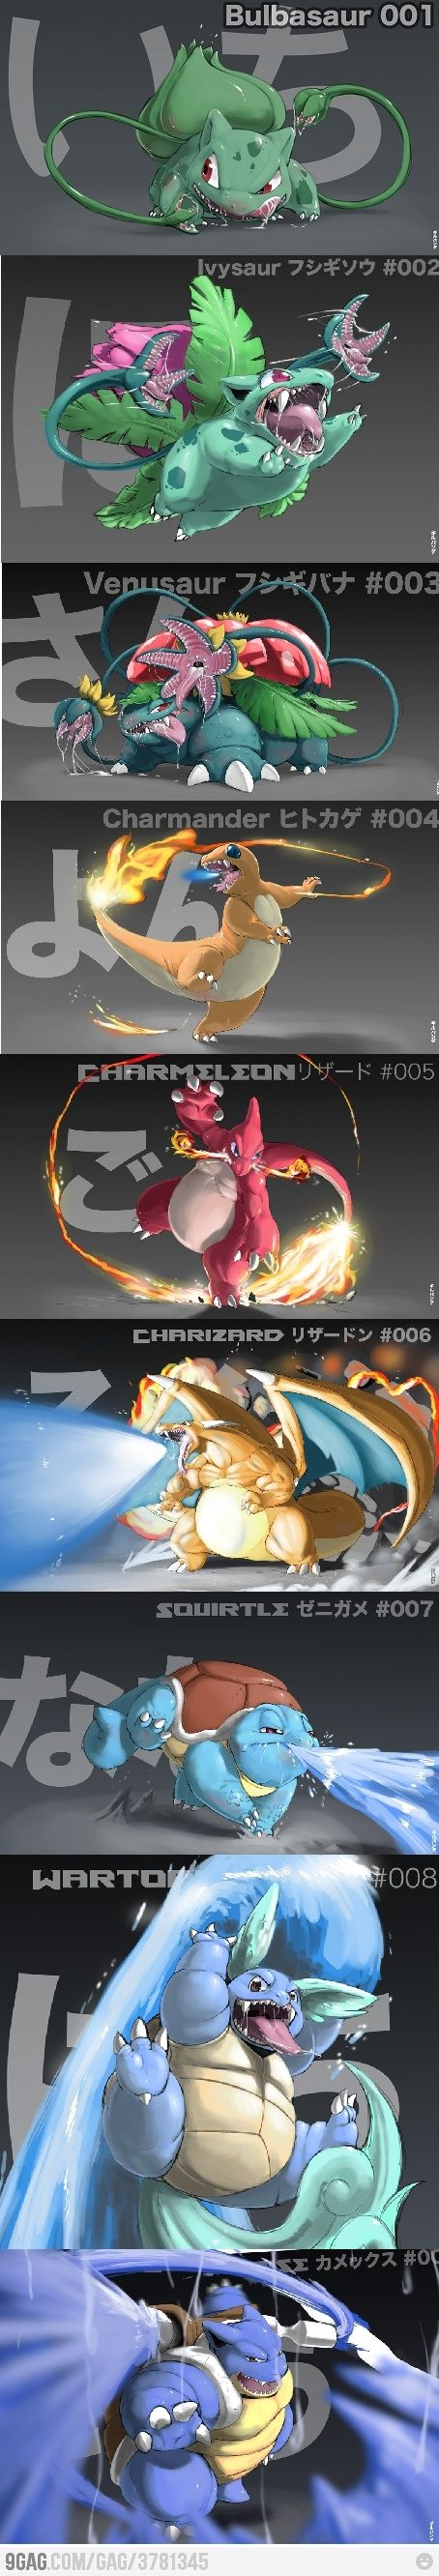 best pokémon images on pinterest